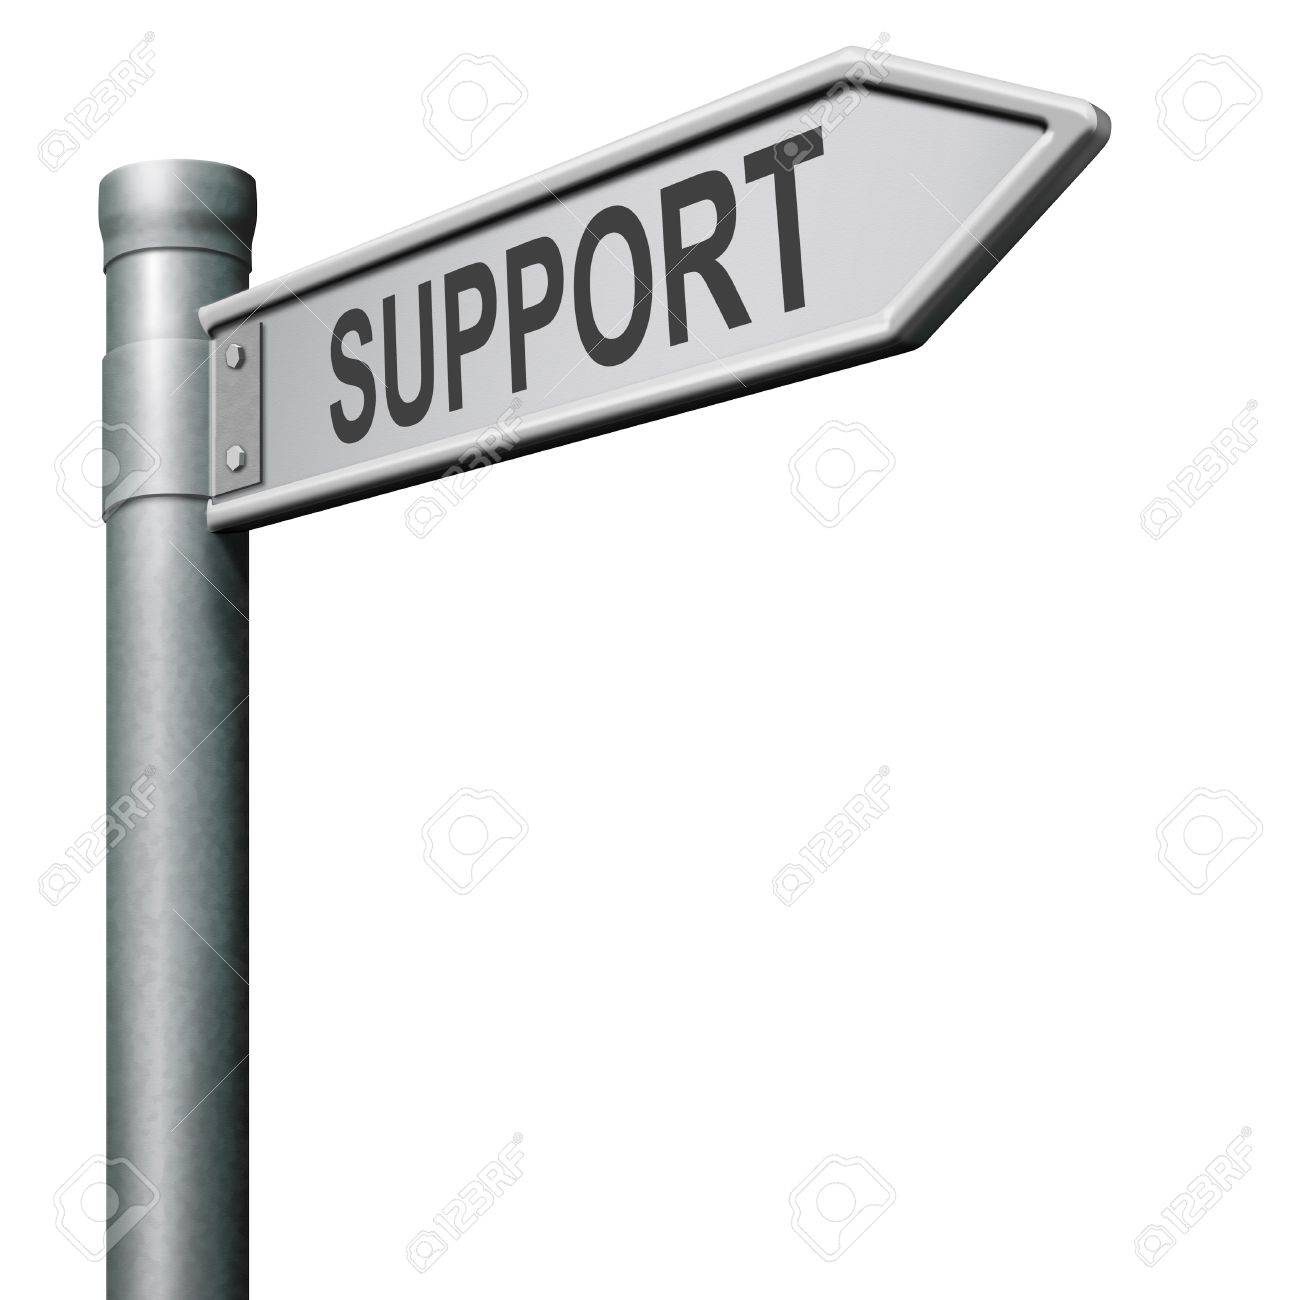 find support in help desk or online assistance Stock Photo - 8406376